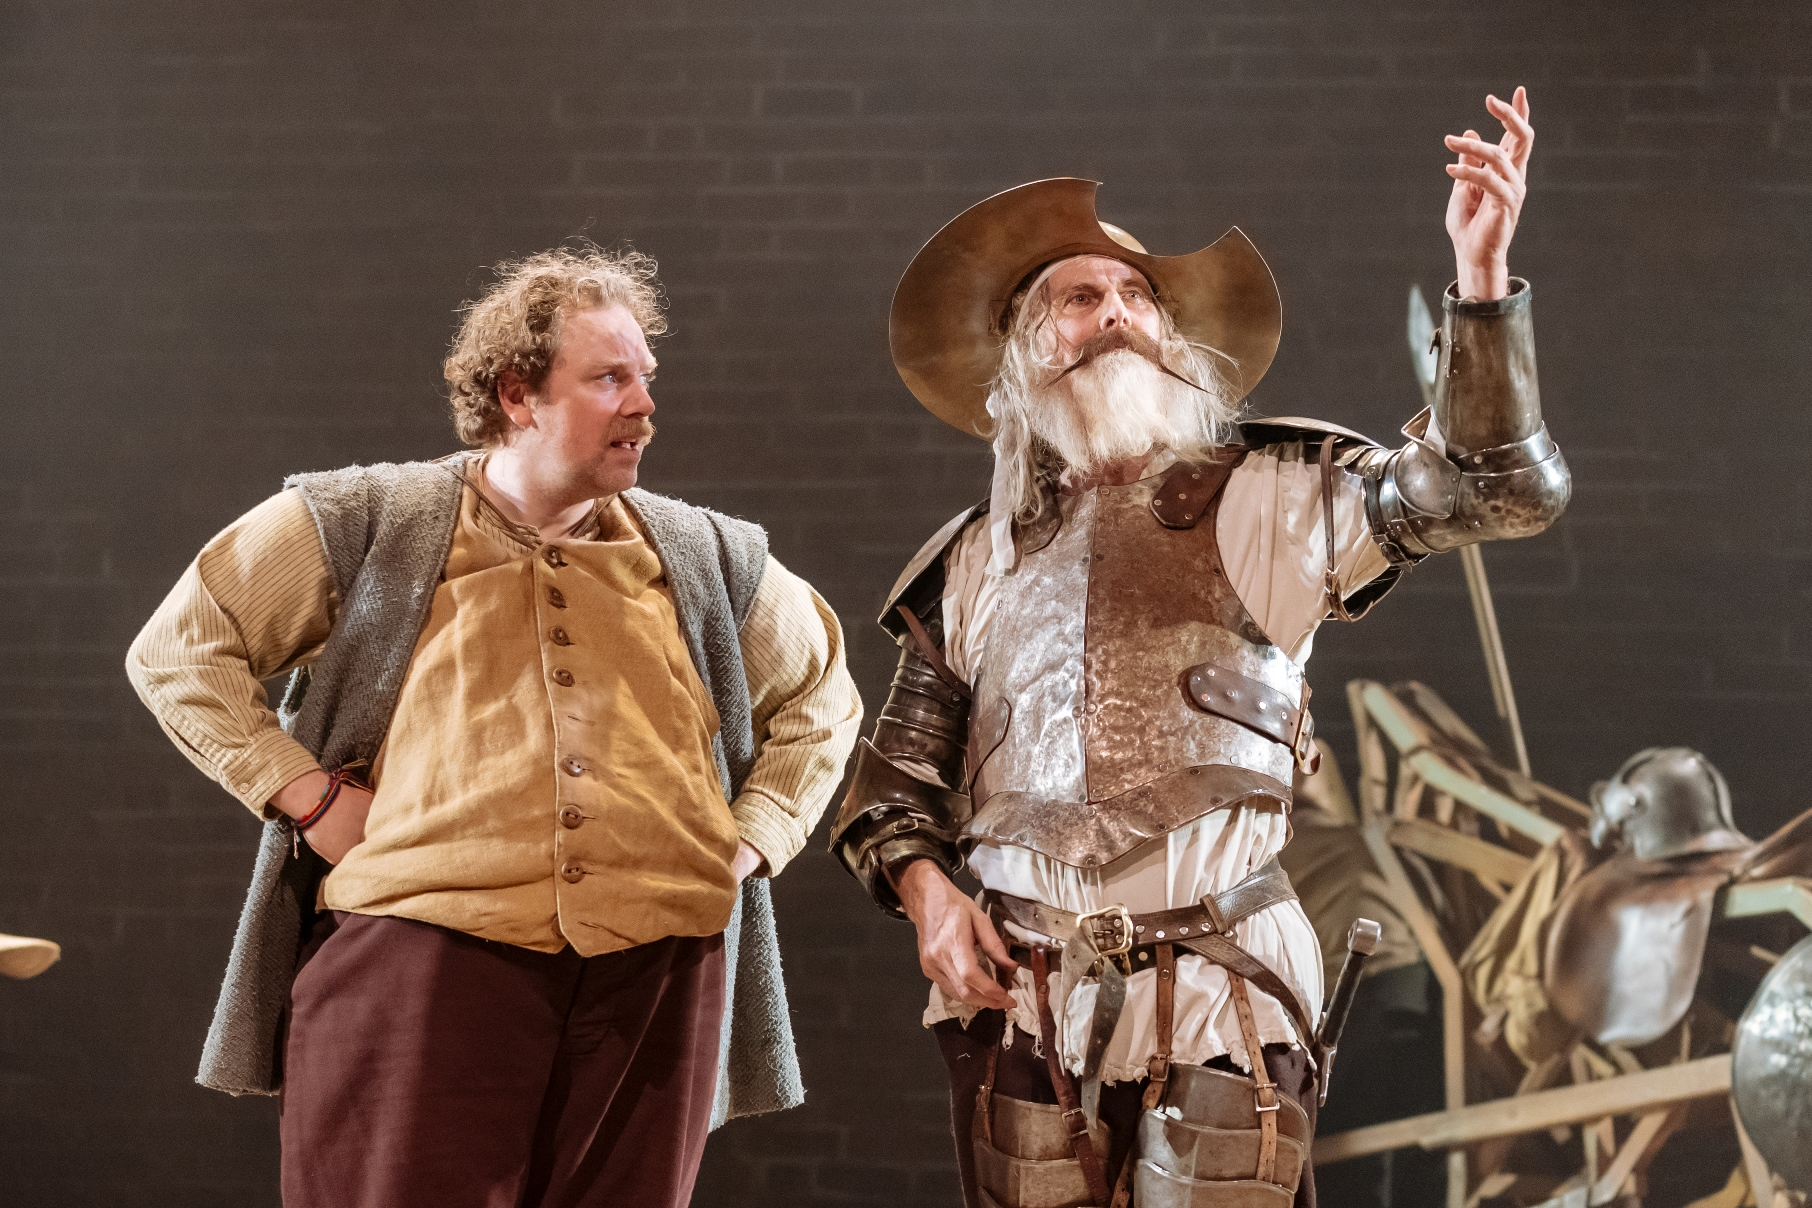 Rufus-Hound-and-David-Threlfall-in-the-Royal-Shakespeare-Companys-Don-Quixote.-London-2018.-Photography-by-Manuel-Harlan